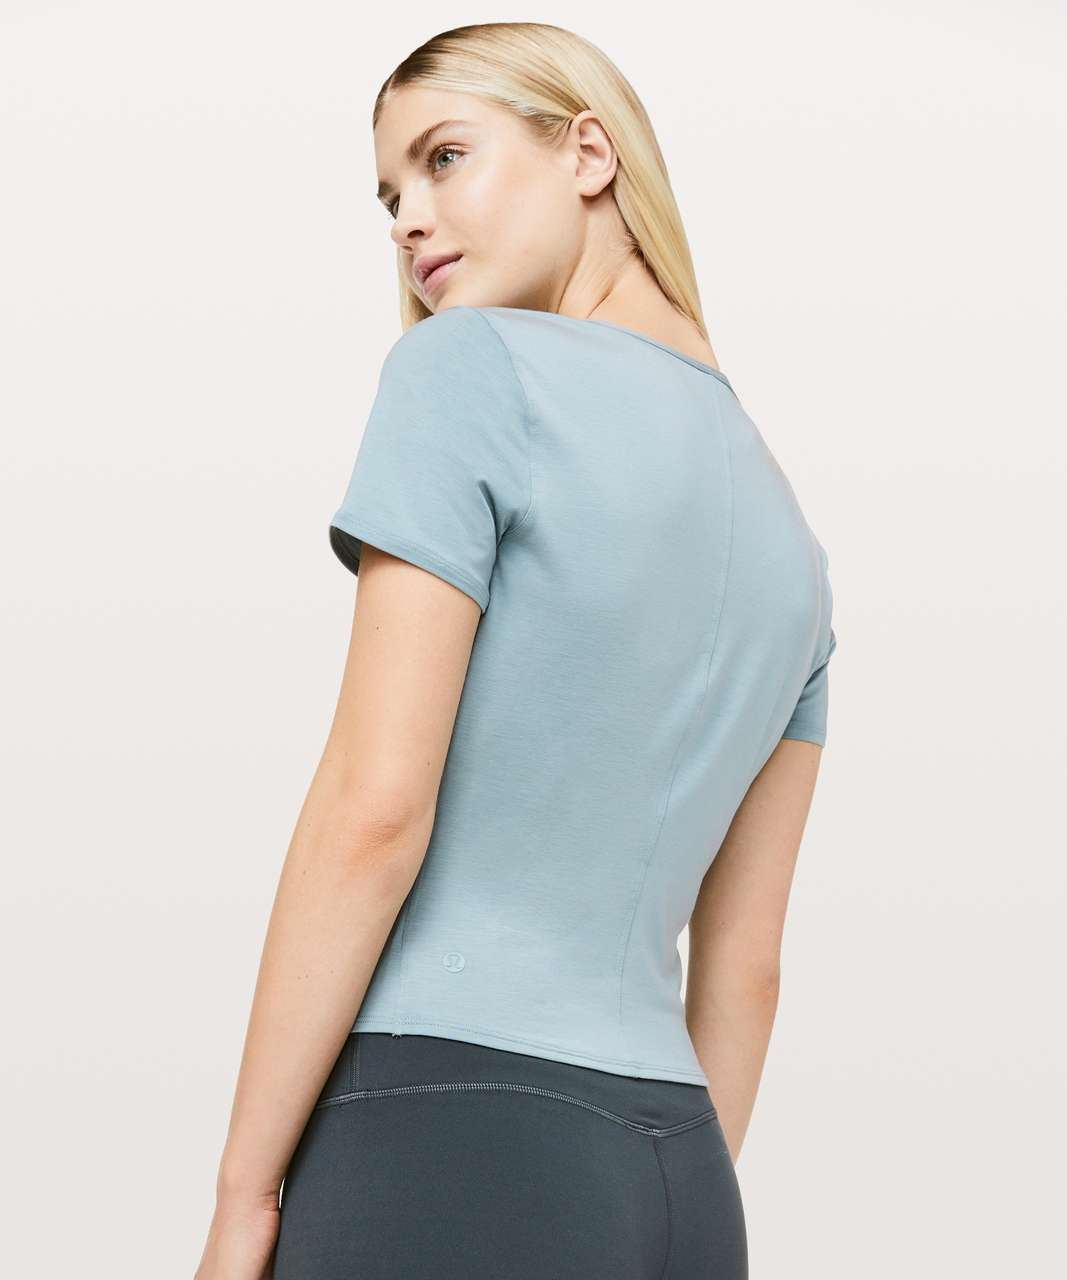 Lululemon Round Trip Short Sleeve - Blue Cast